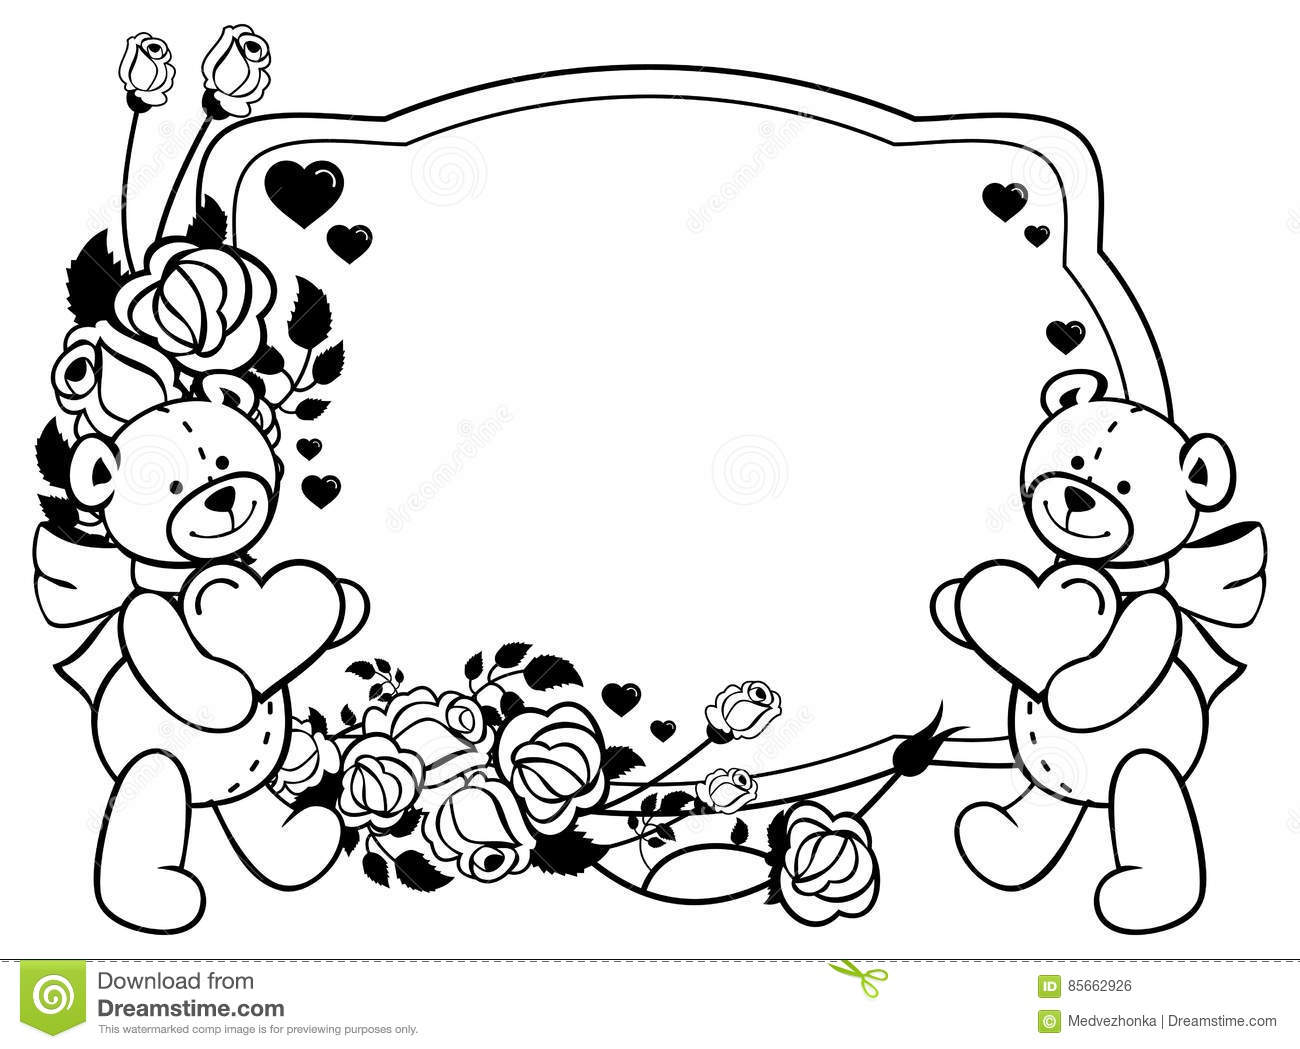 coloring pages teddy bear holding roses | Oval Label With Outline Roses And Cute Teddy Bear Holding ...